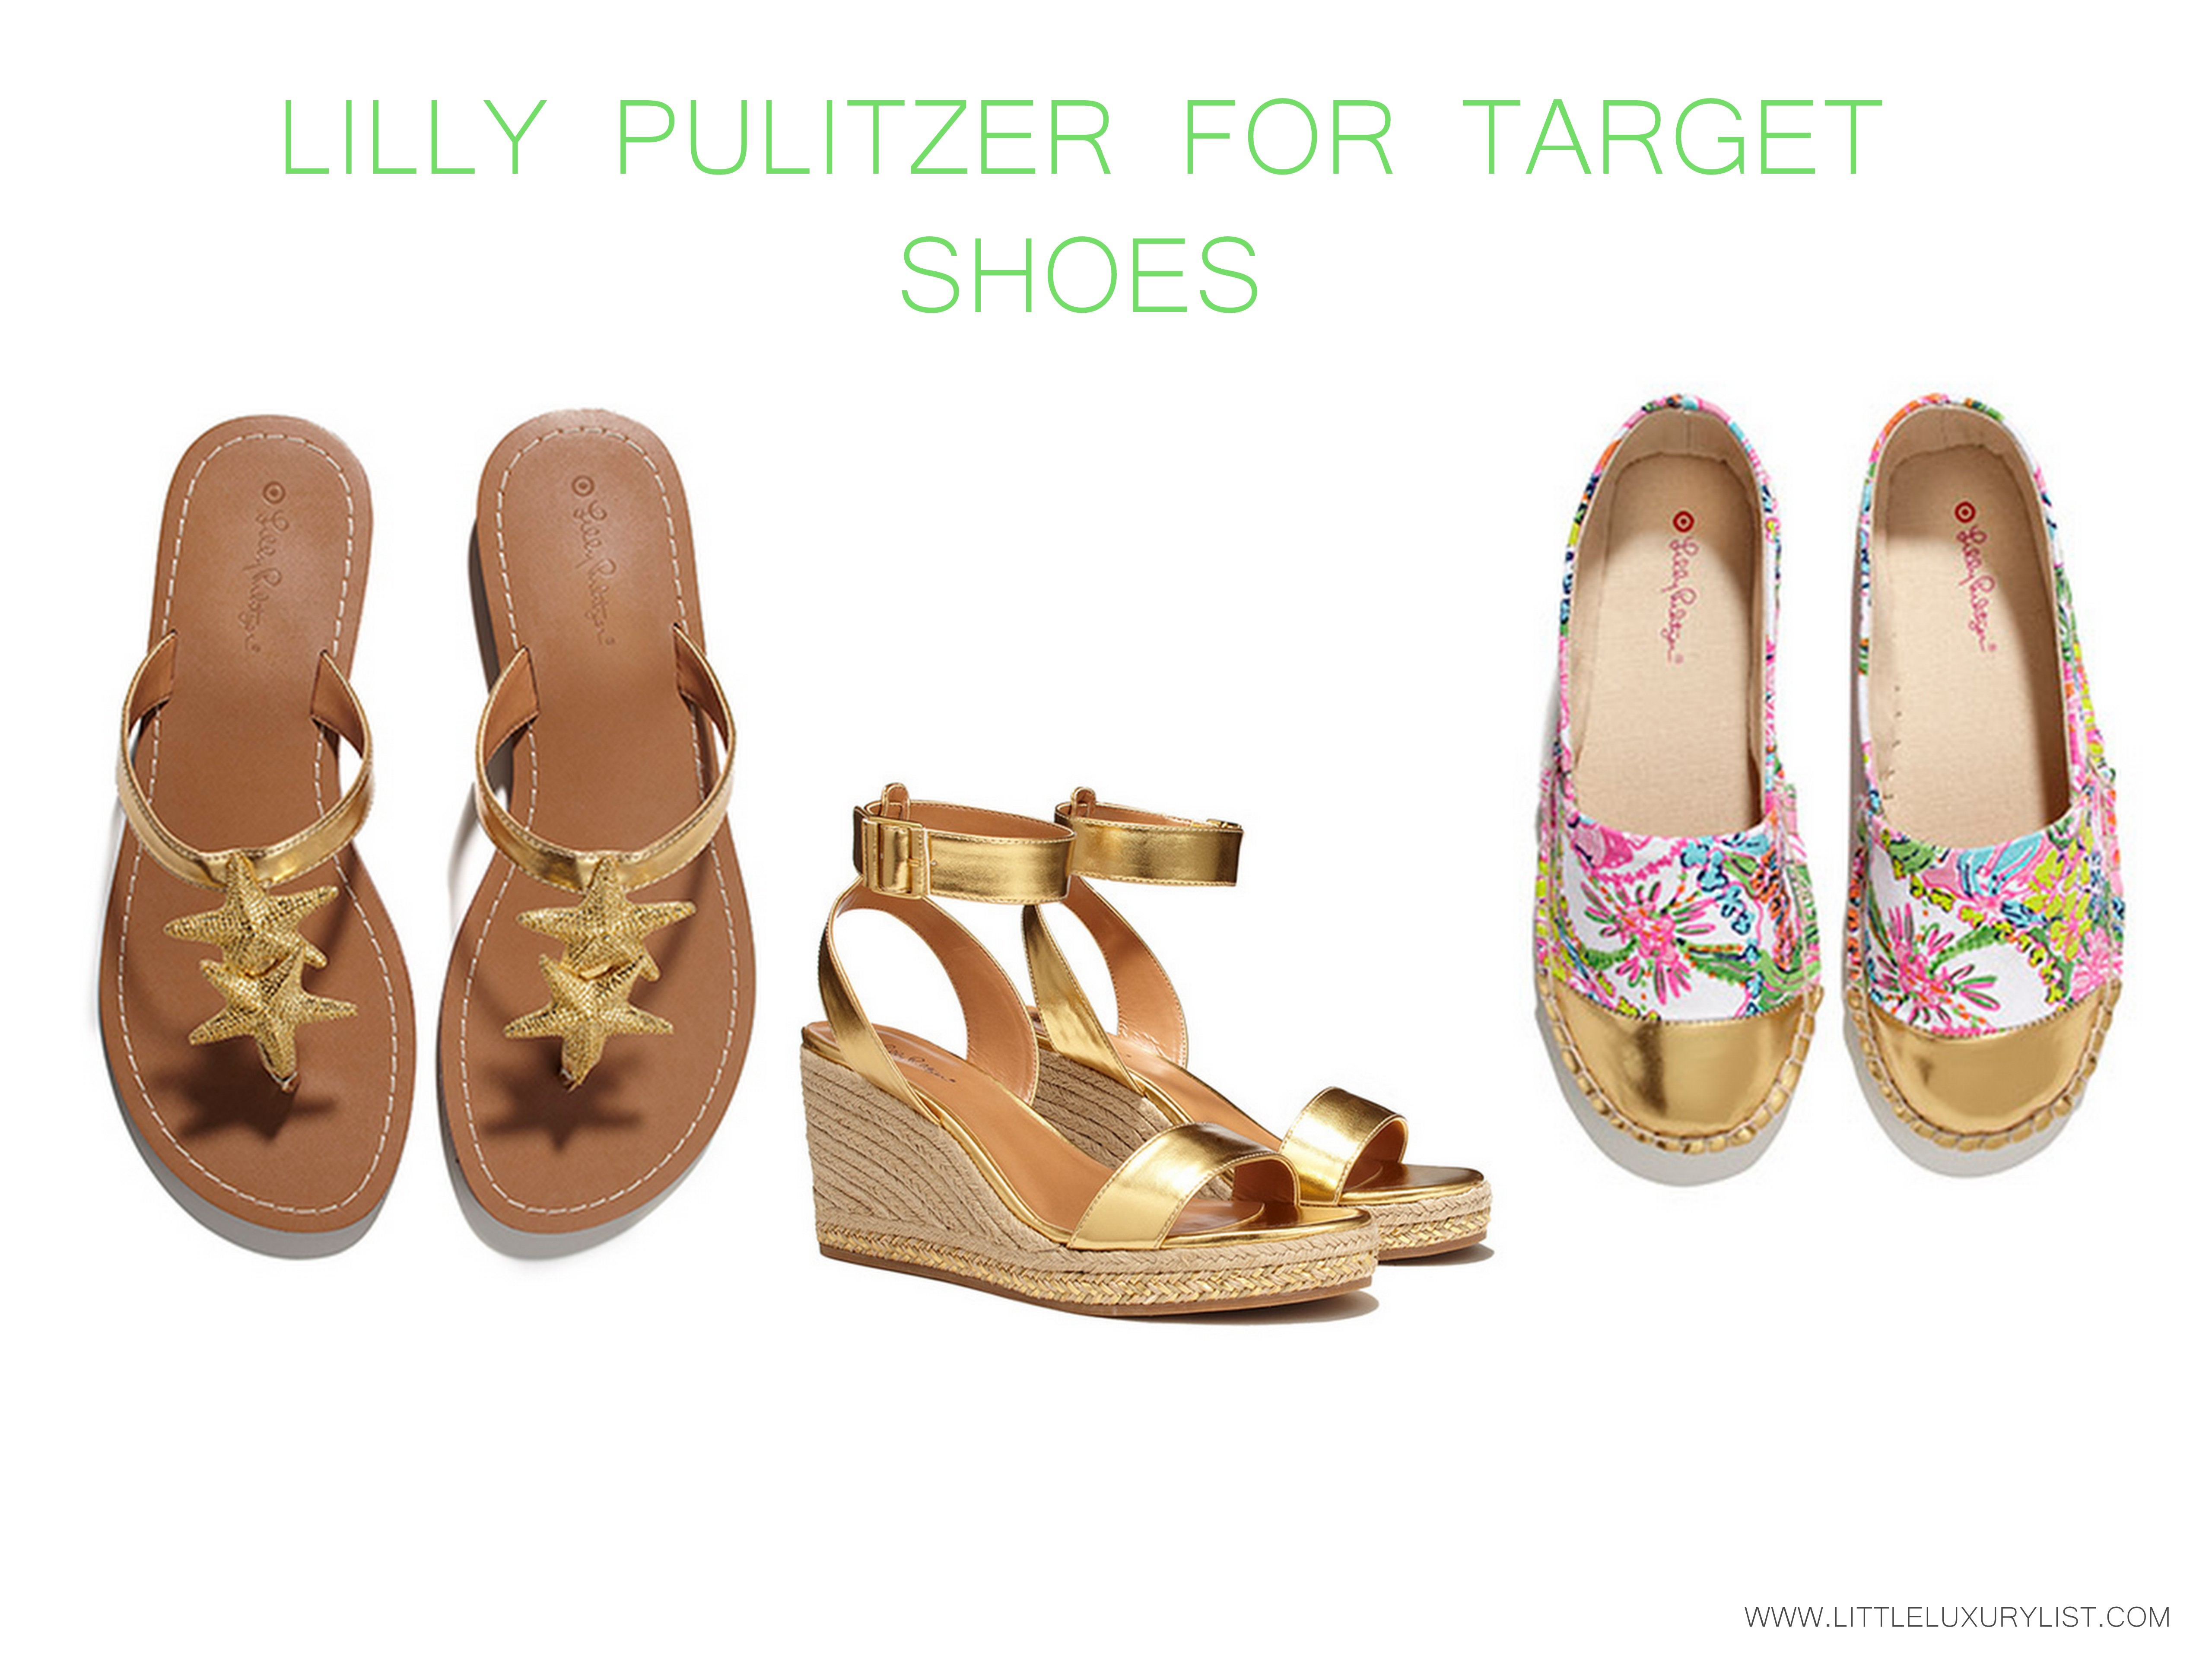 9ca8a3c84a3 Lilly Pulitzer for Target Sea shoes - little luxury list